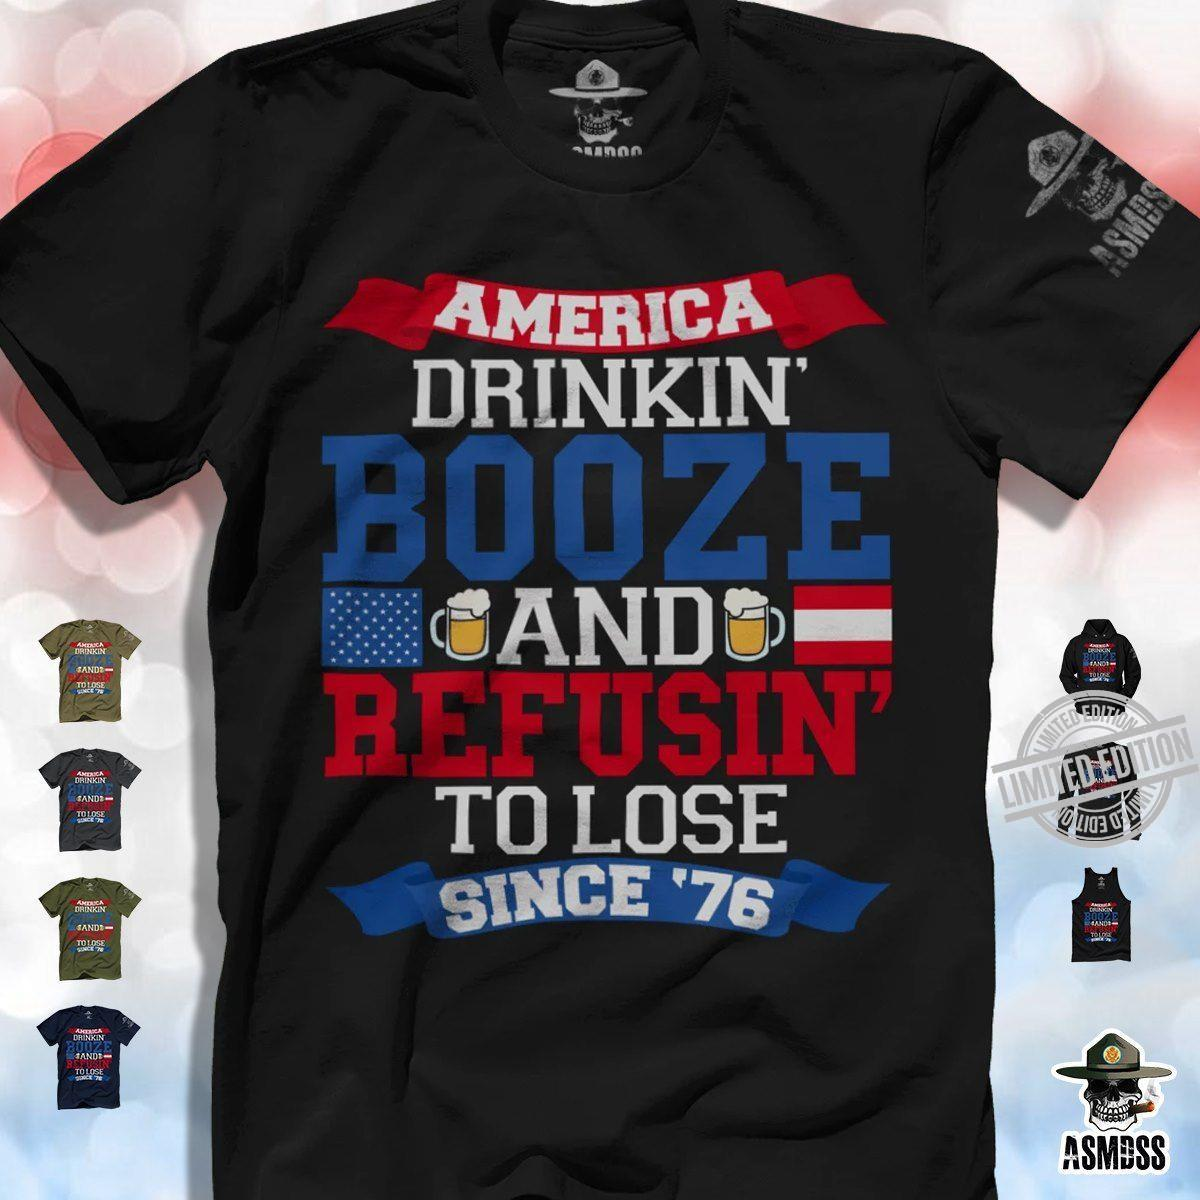 America Drinkin Booze And Befusin To Lose Since 76 Shirt